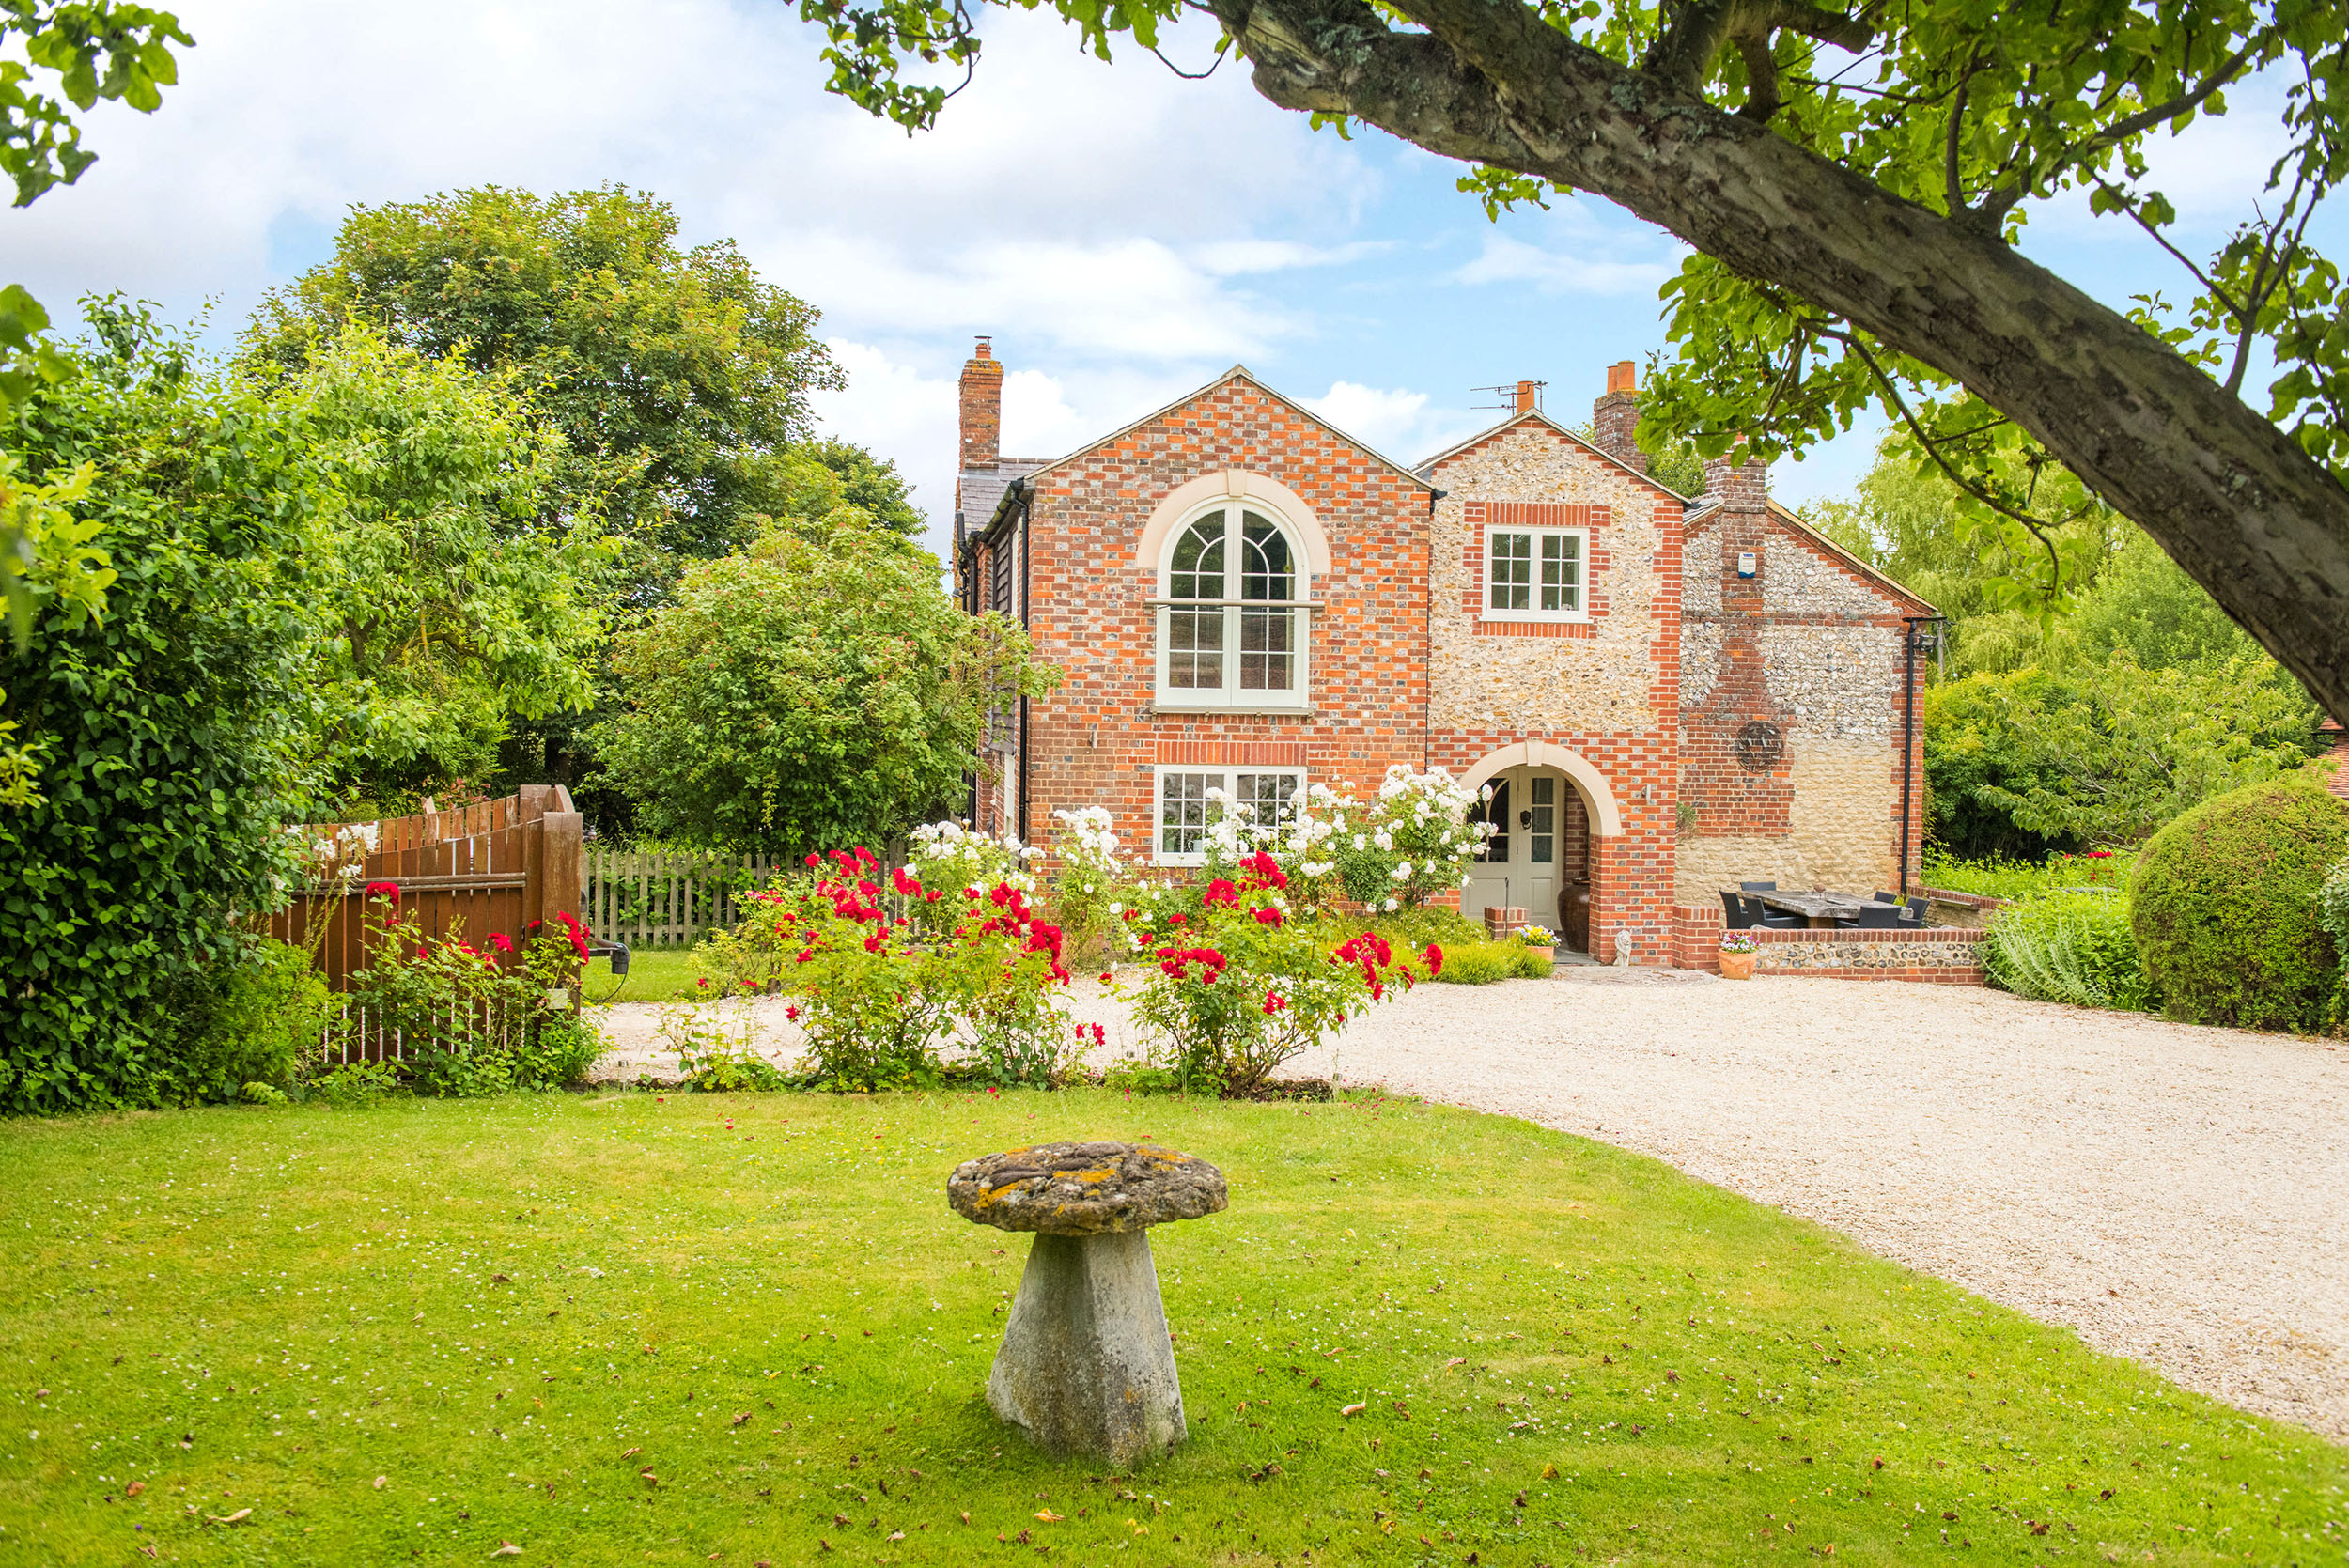 A wonderful home in the Chilterns which has had just five owners in 220 years, now looking for number six